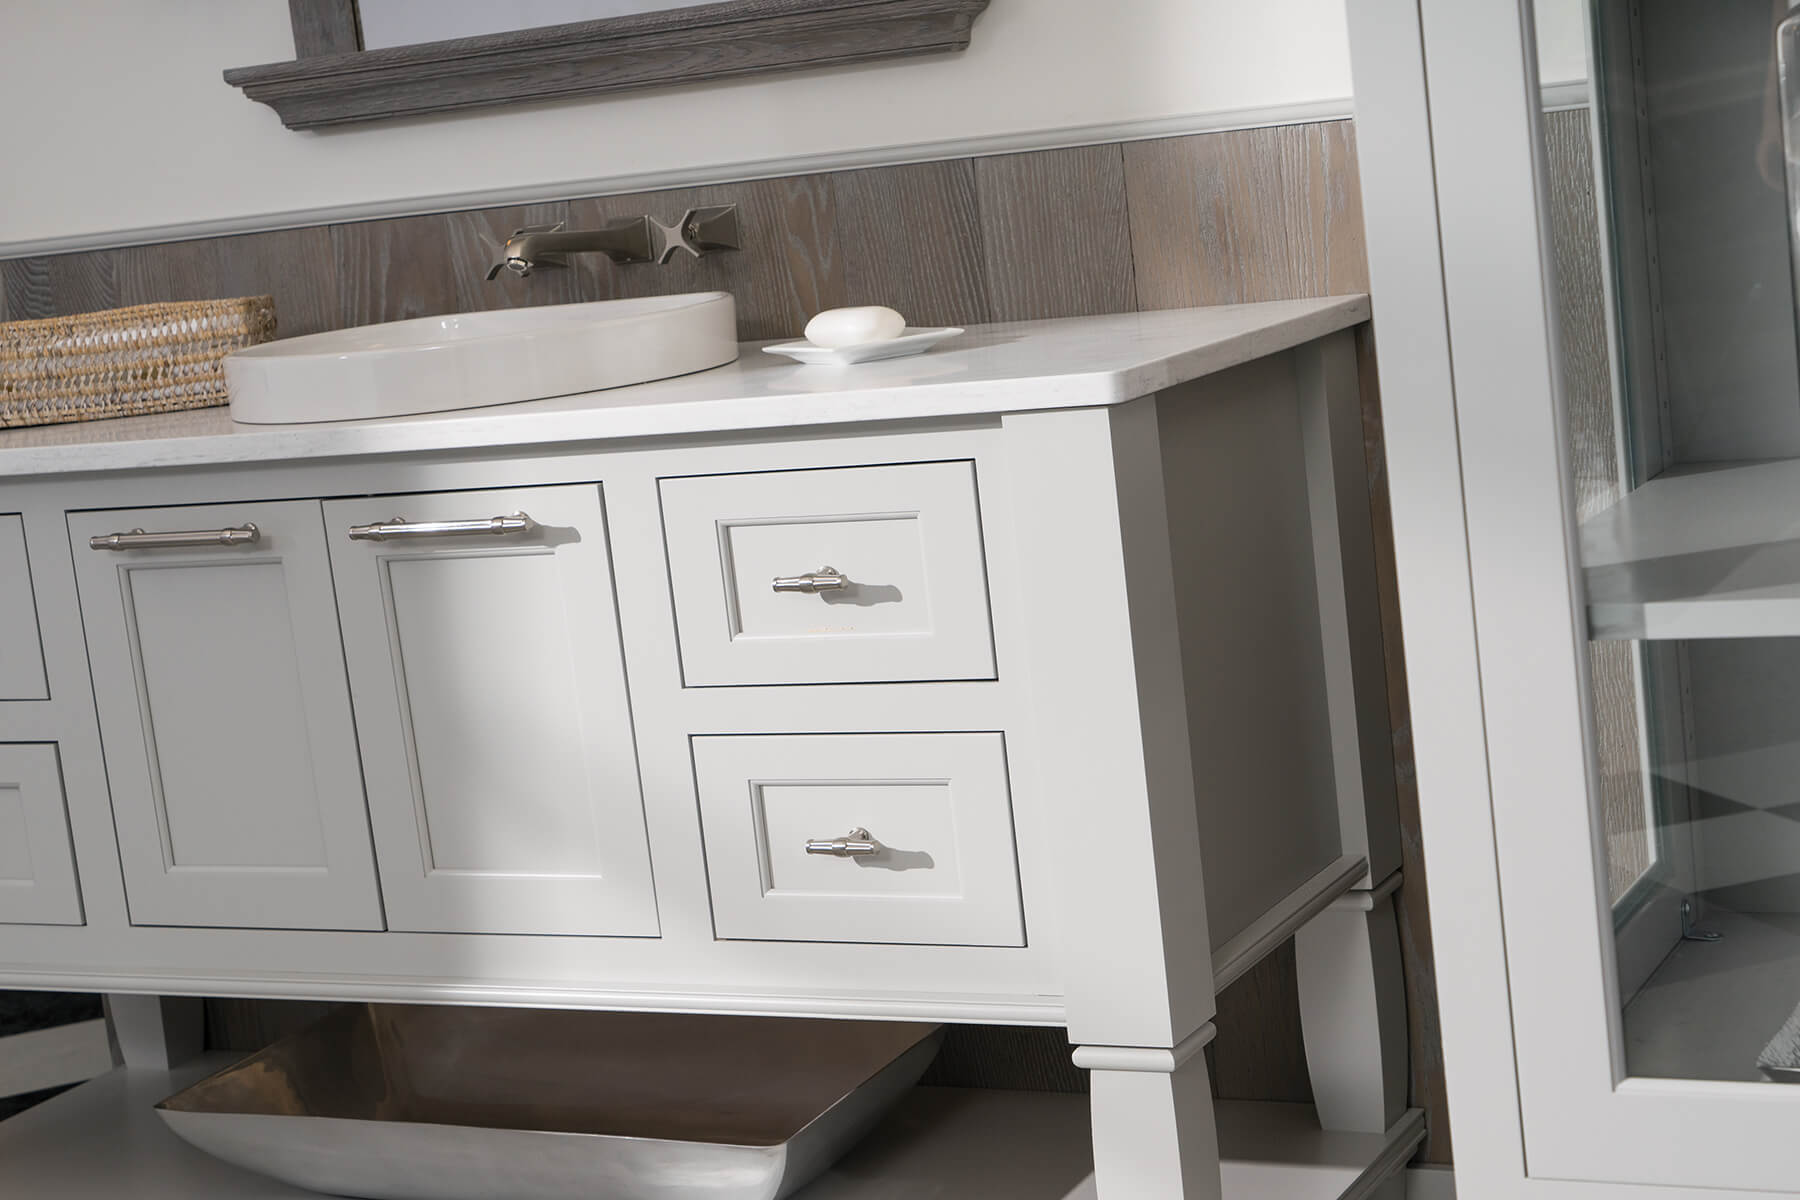 Light gray painted bathroom vanity cabinets from Dura Supreme Cabinetry.